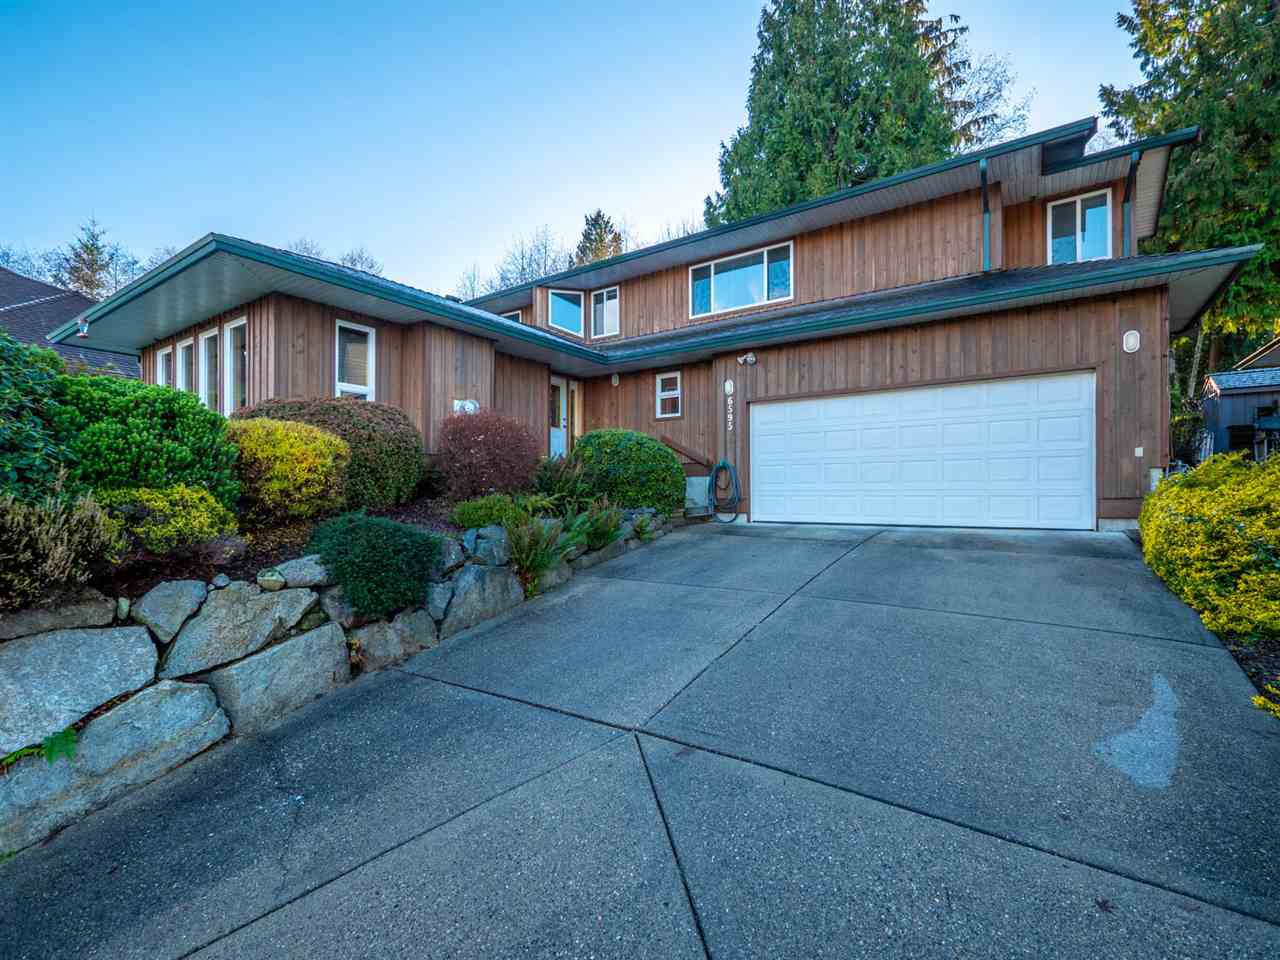 """Main Photo: 6595 N GALE Avenue in Sechelt: Sechelt District House for sale in """"THE SHORES"""" (Sunshine Coast)  : MLS®# R2325922"""